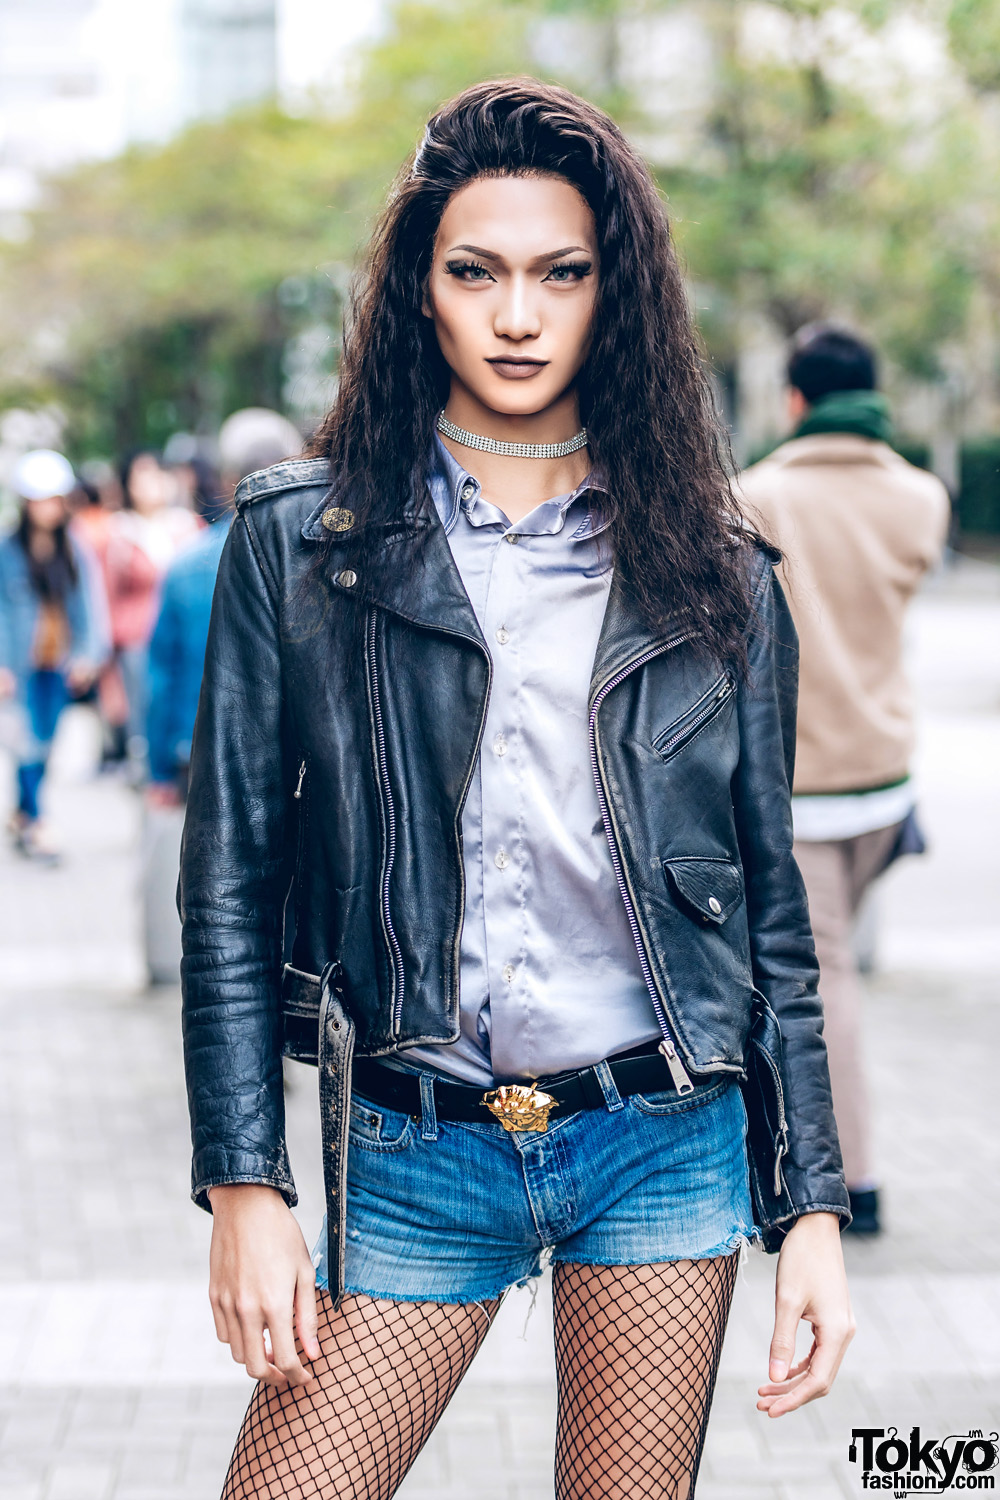 Beauty Student W Black Leather Jacket Jean Shorts